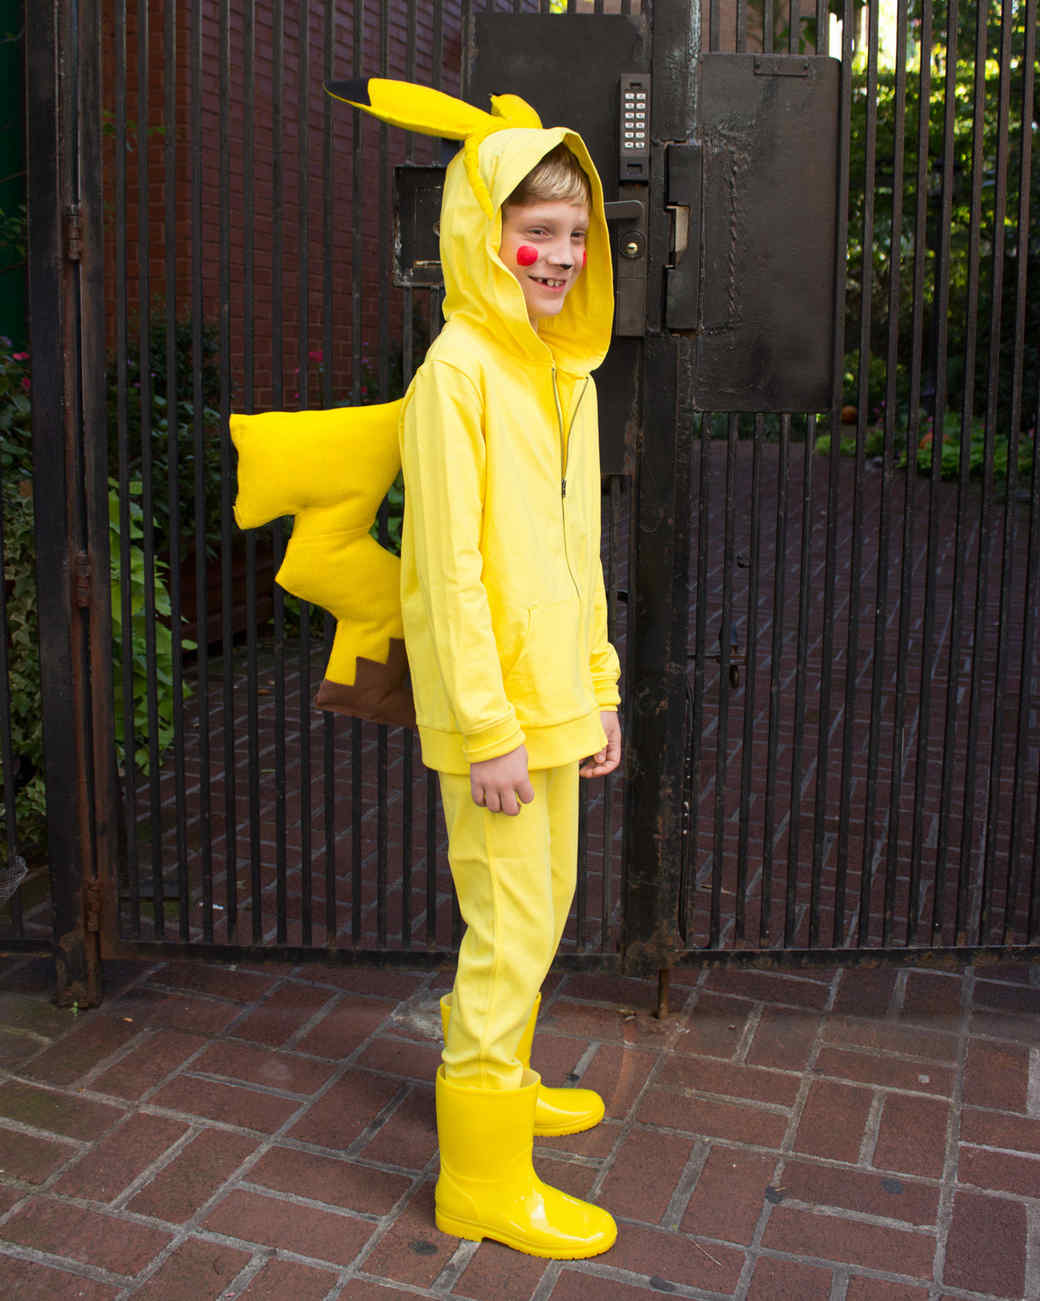 pikachu costume & You Can Make This Pikachu Costume Using Pajamas and a Few Supplies